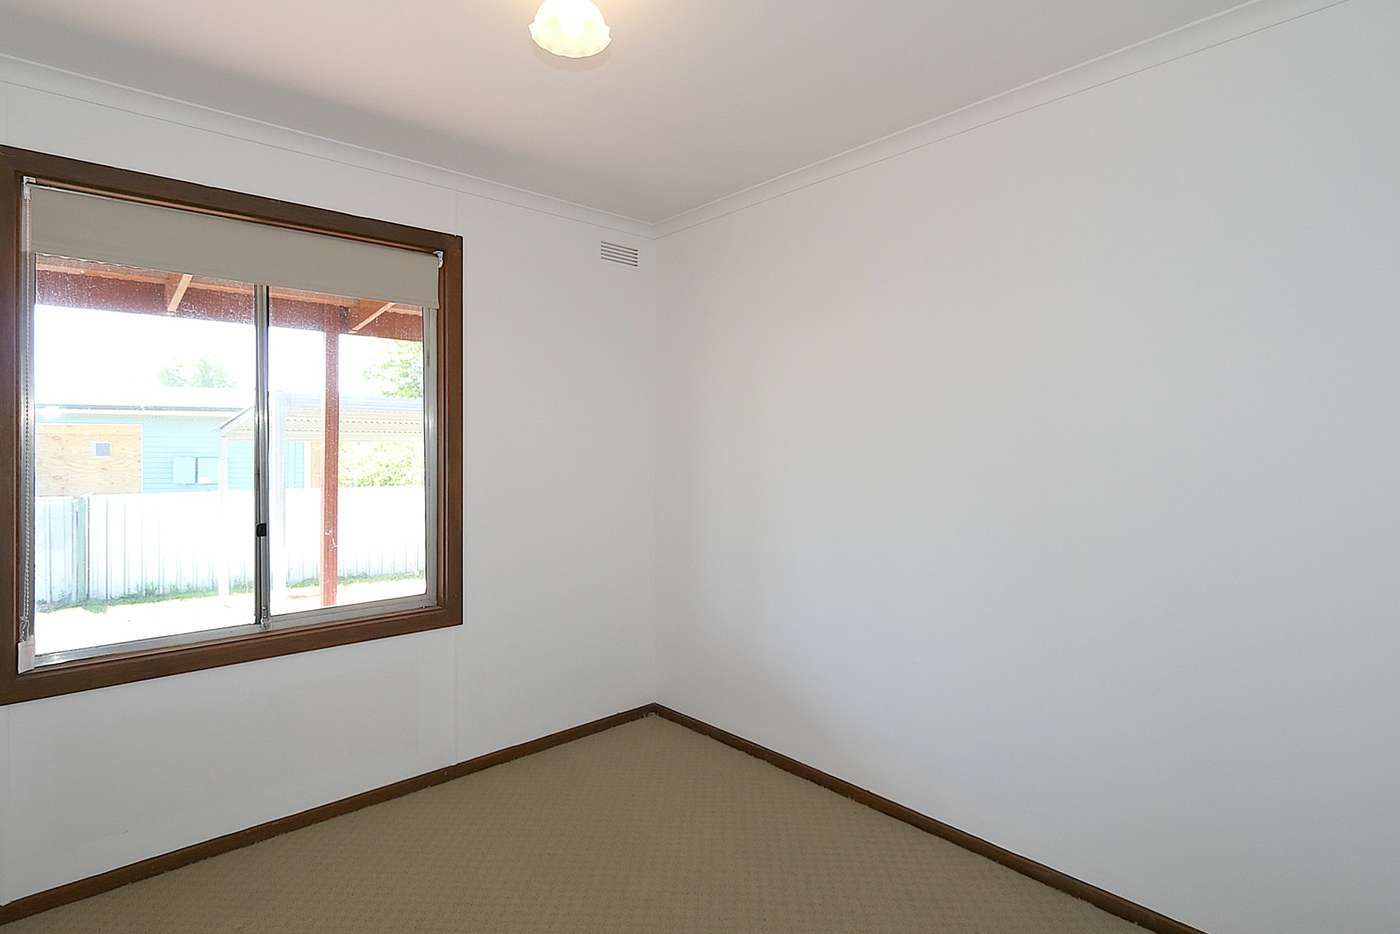 Sixth view of Homely house listing, 33 Buna Street, Ashmont NSW 2650